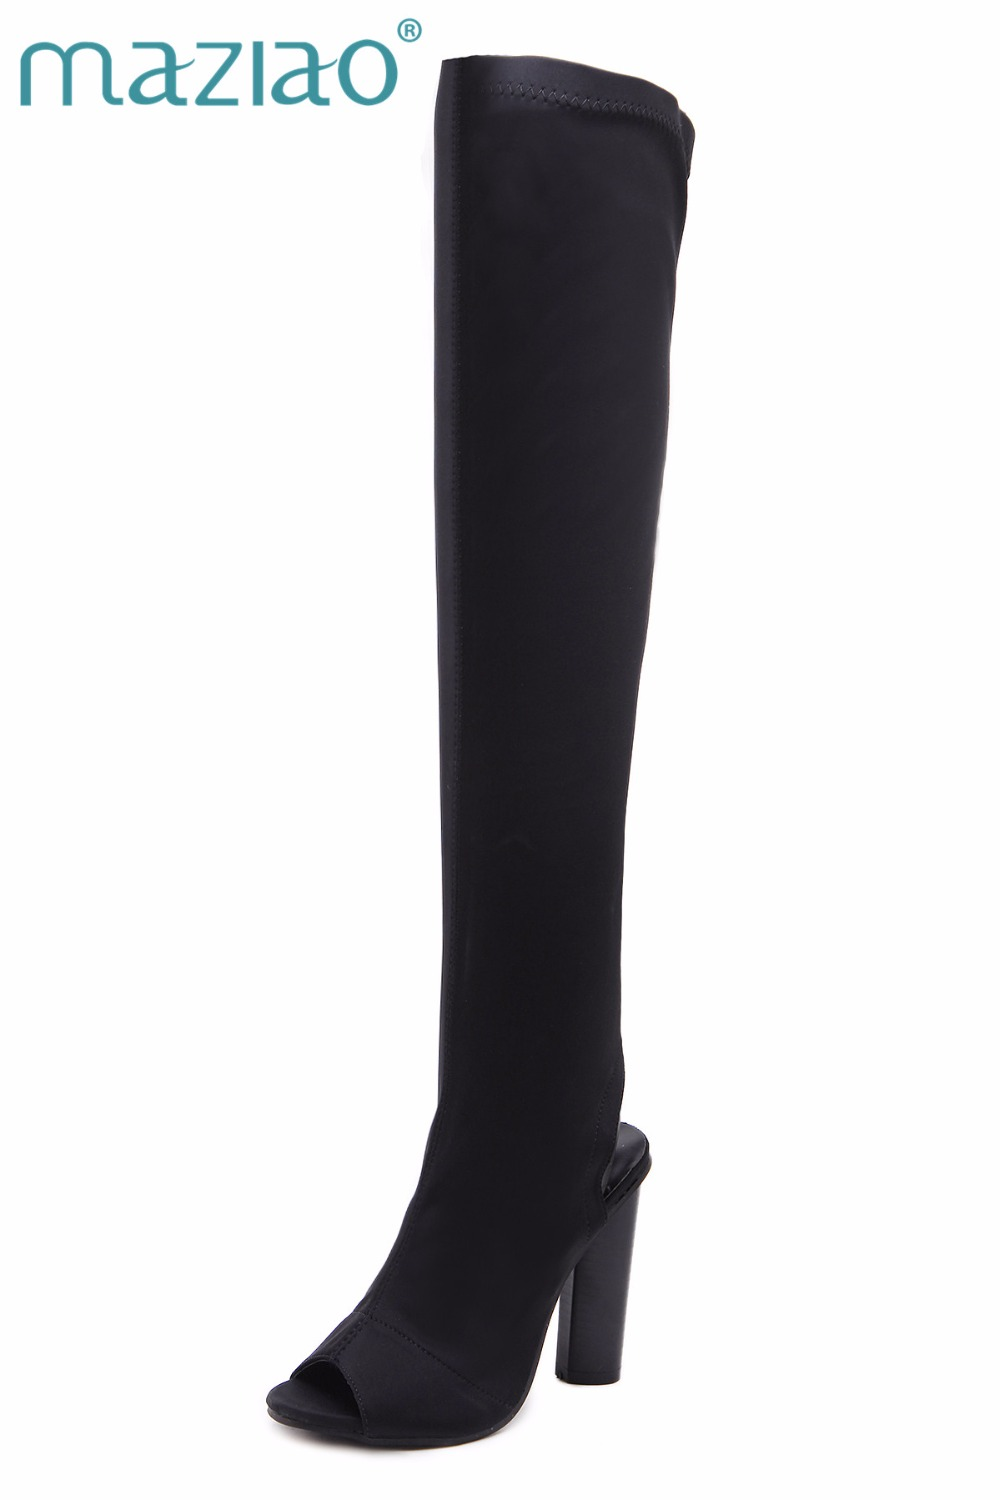 MAZIAO 2017 Autumn women thigh high boots over the knee high heel boots peep toe high heels woman shoes botas mujer femininas women fashion pu leather pointed toe over the knee boots ladies autumn winter high heels boots sexy thigh high boots botas mujer